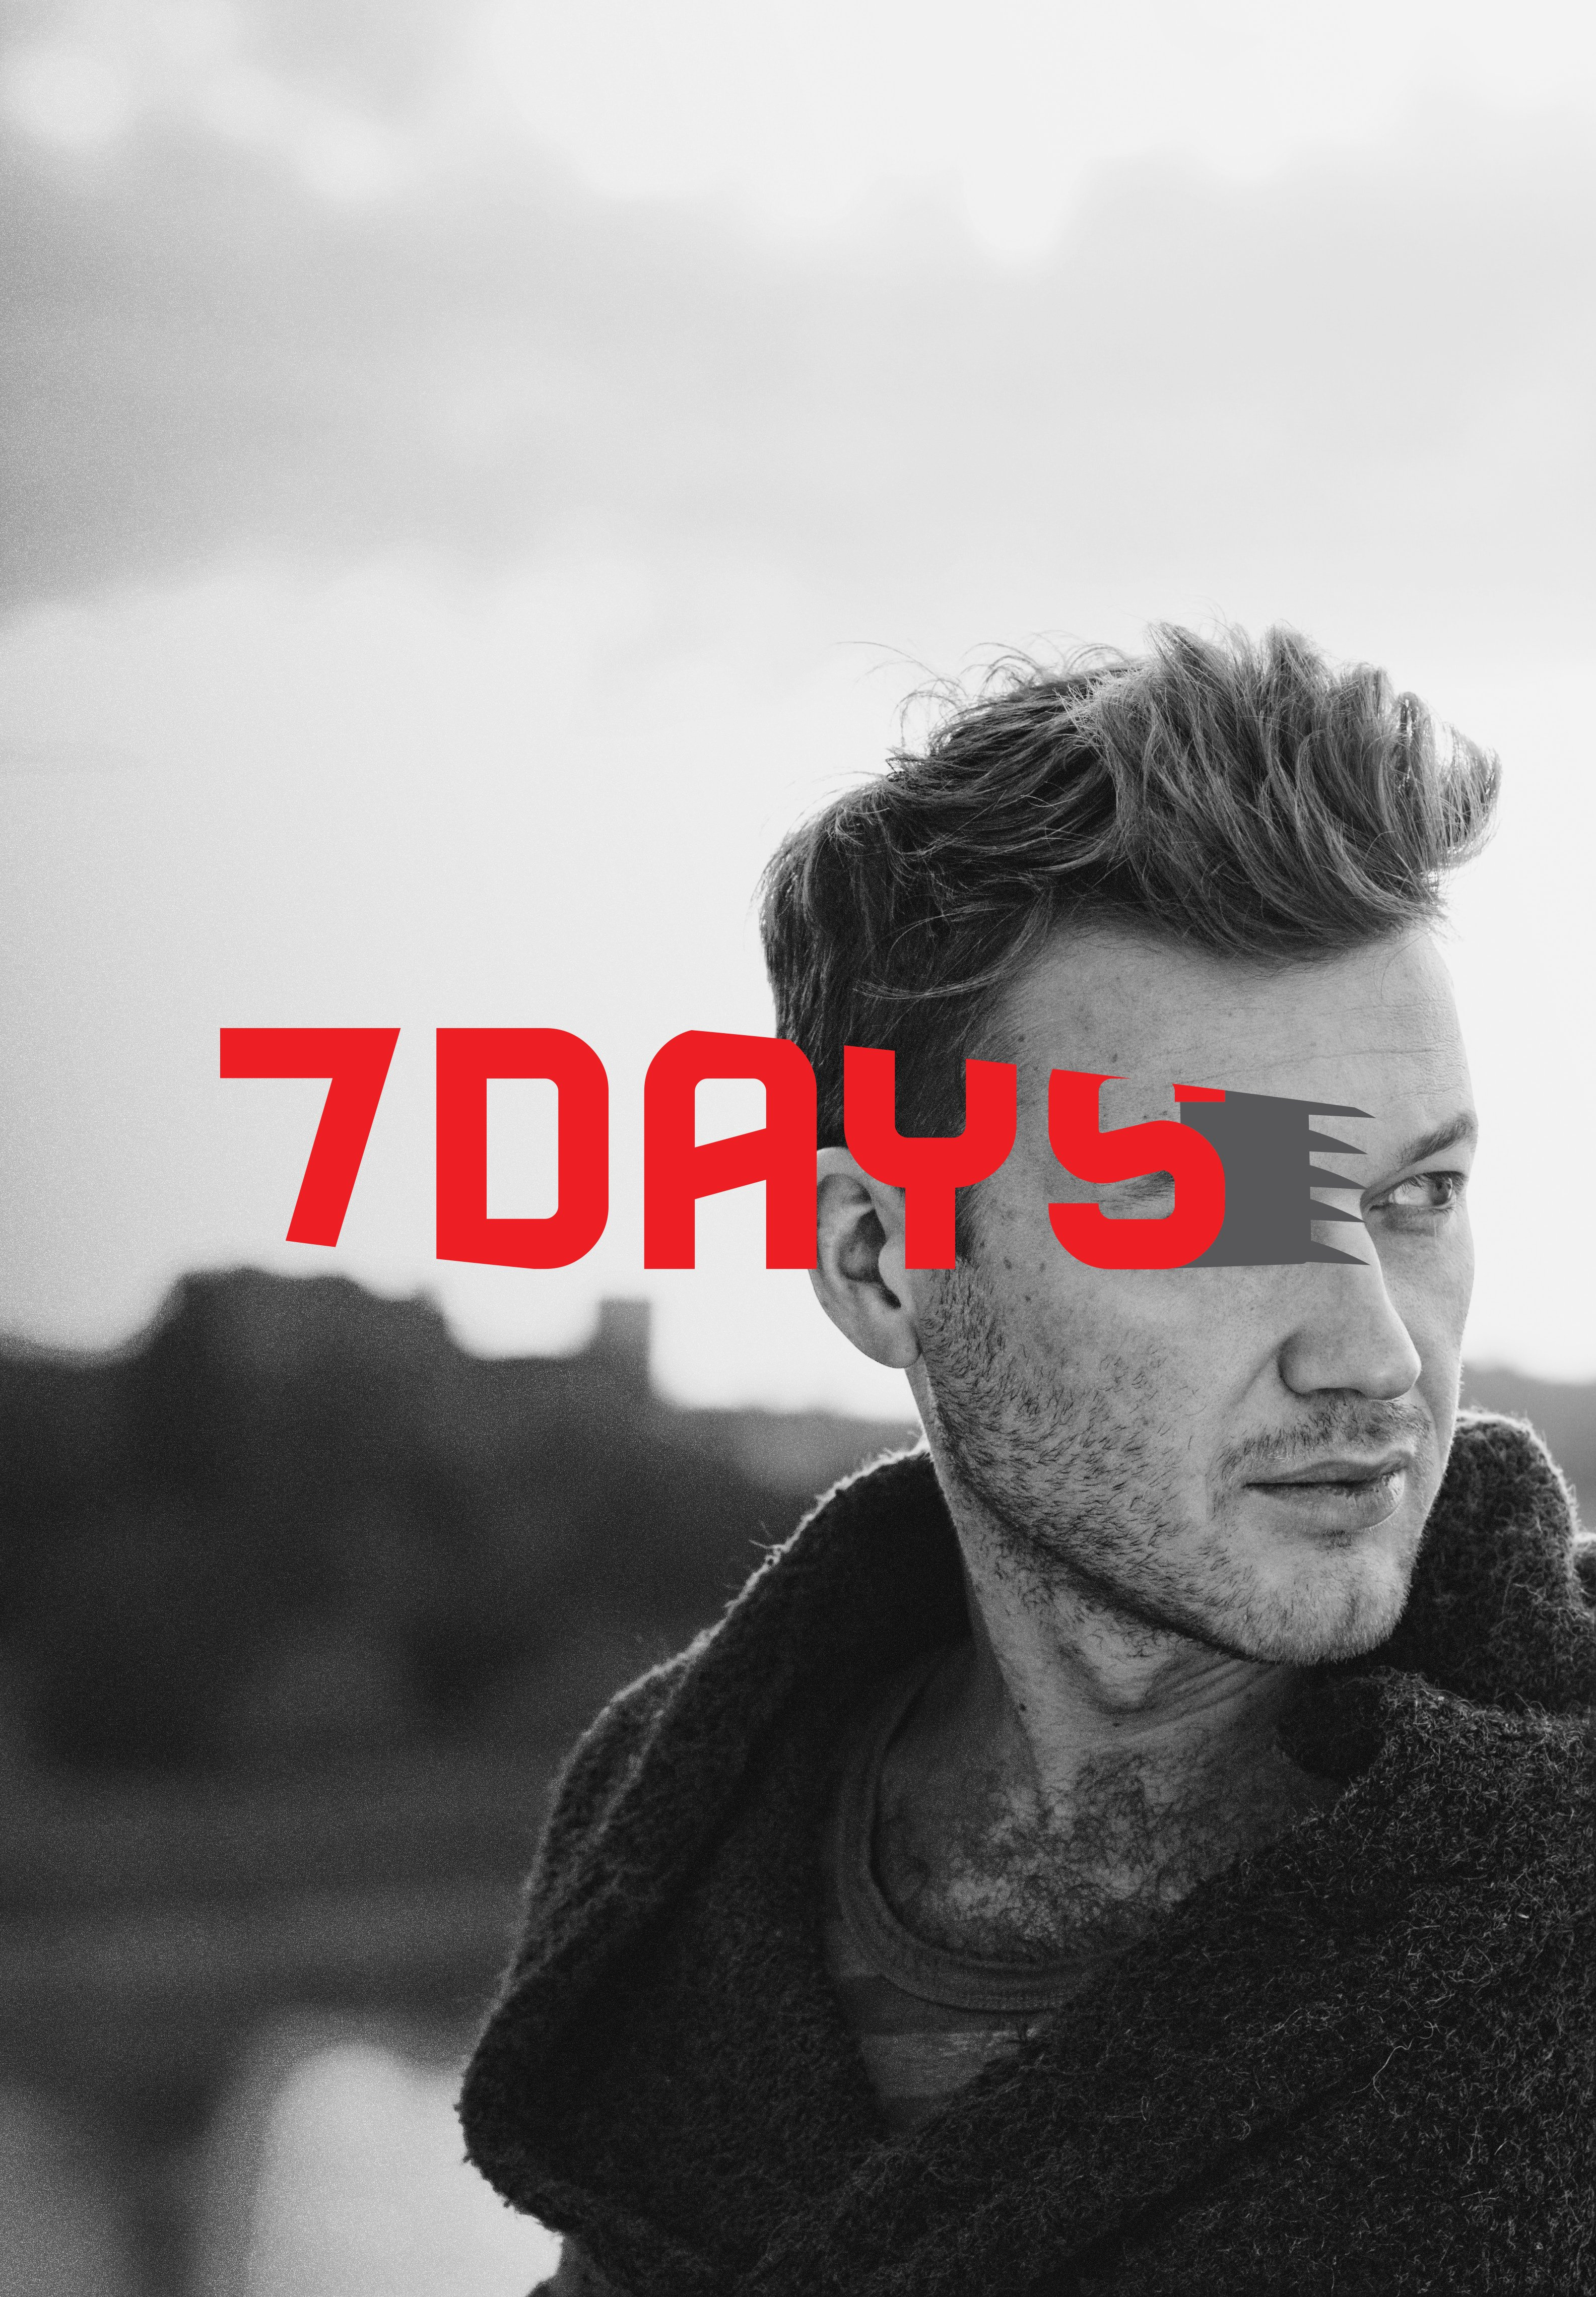 7days Logo With Men Hairstyle